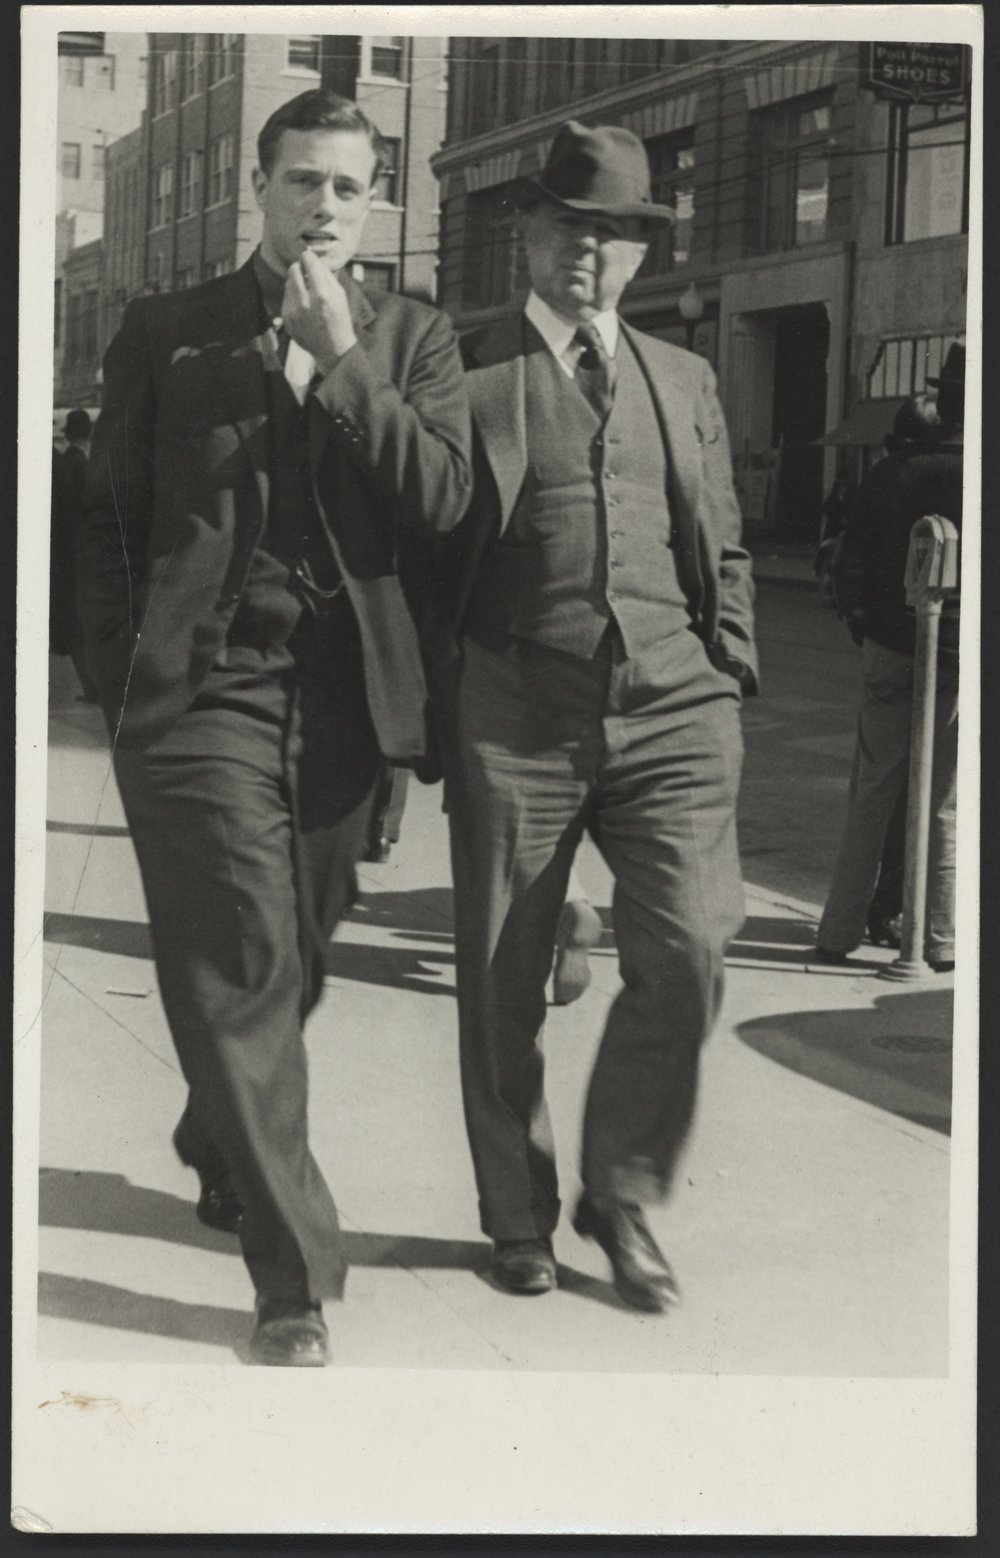 Johns Jr. and Sr. in Manhattan, 1932